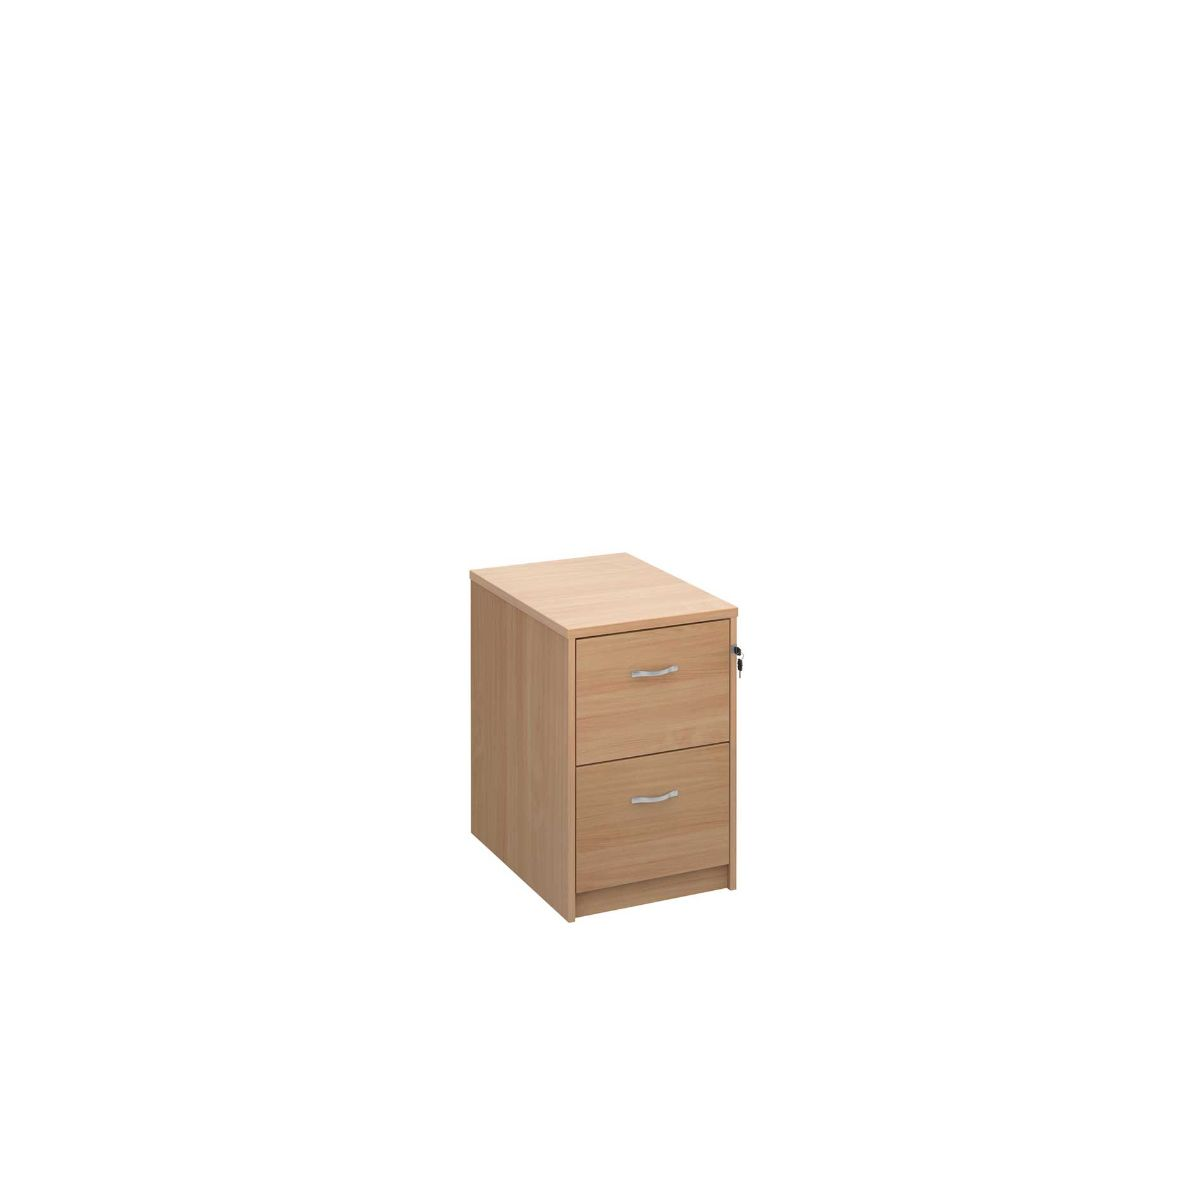 Deluxe Executive Two Drawer Filing Cabinet, Beech